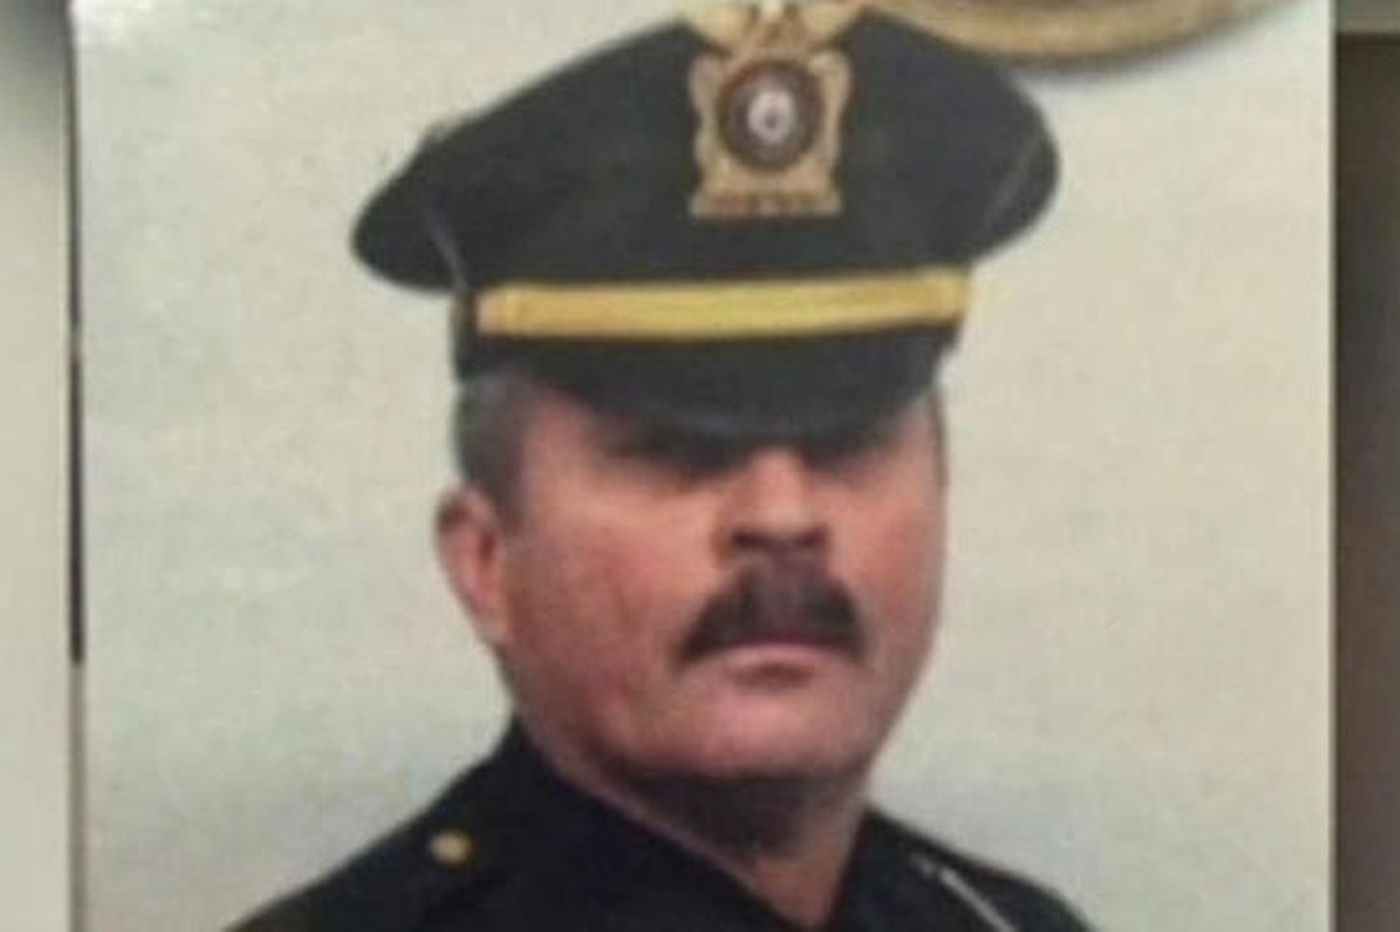 Former Bordentown Twp. police chief indicted, accused of lying to FBI in racial case